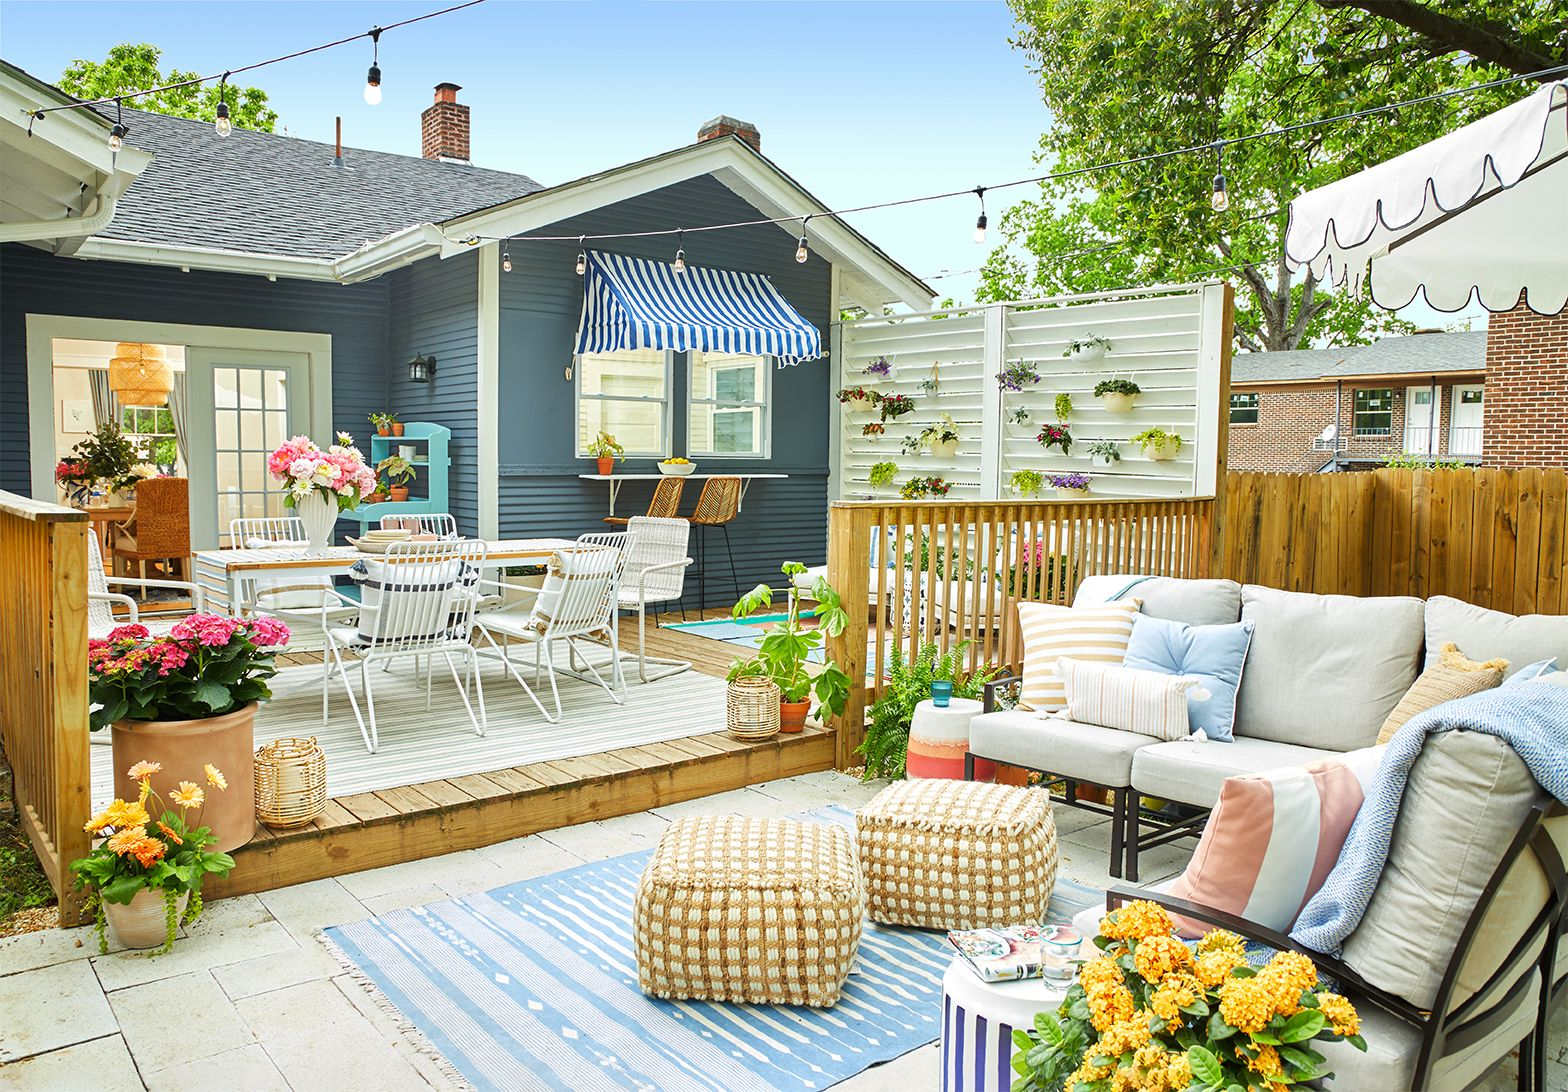 9 Best Patio and Porch Design Ideas - Decorating Your Outdoor Space